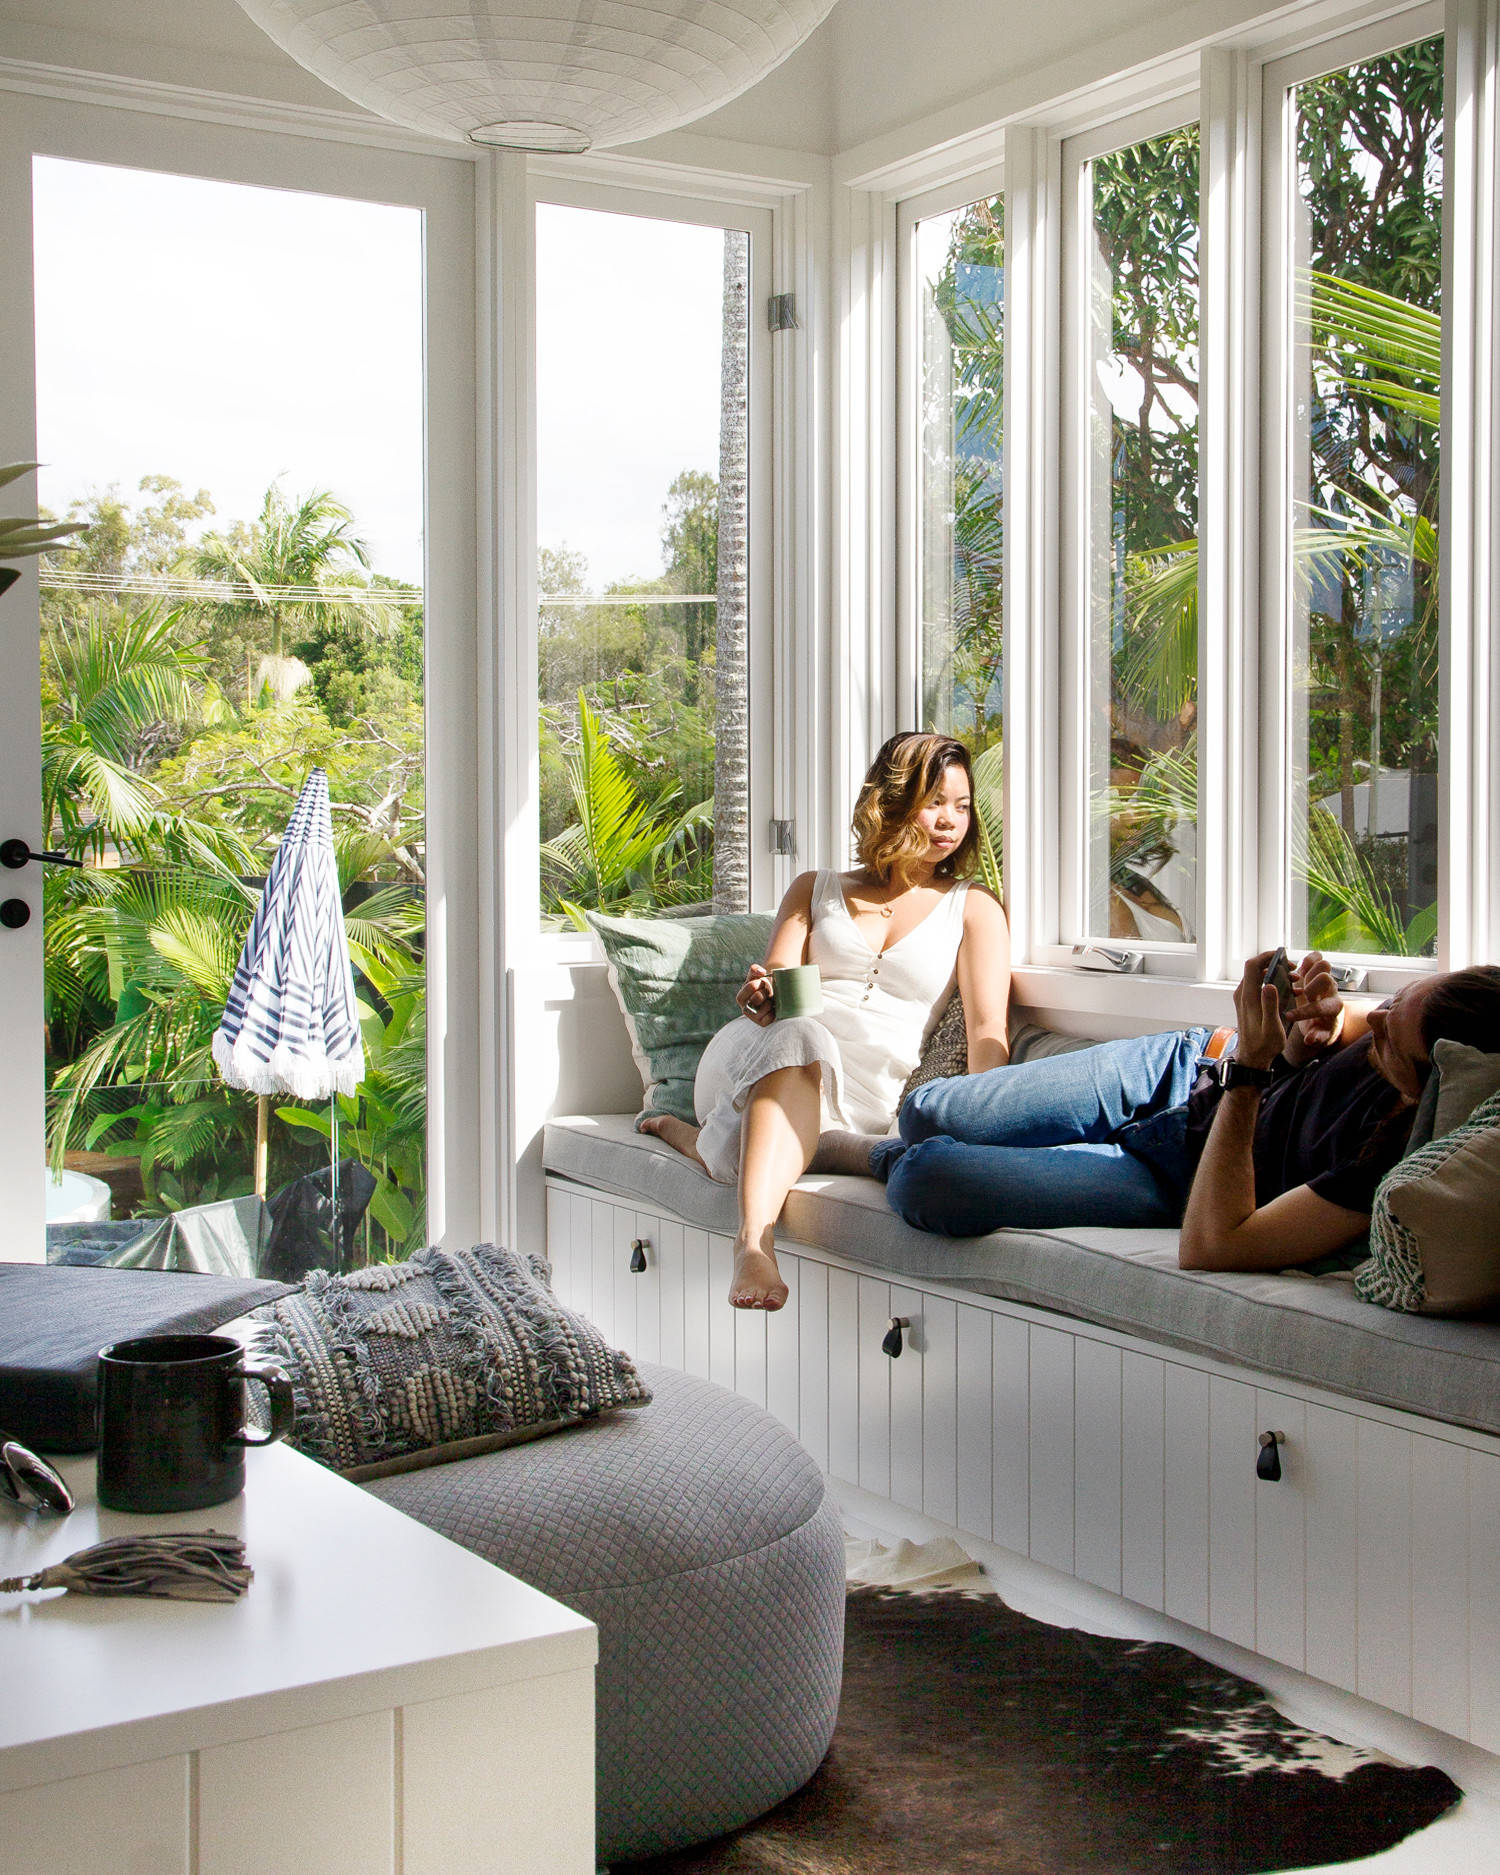 28 Beautiful Tropical Sunroom Pictures & Ideas - September, 28